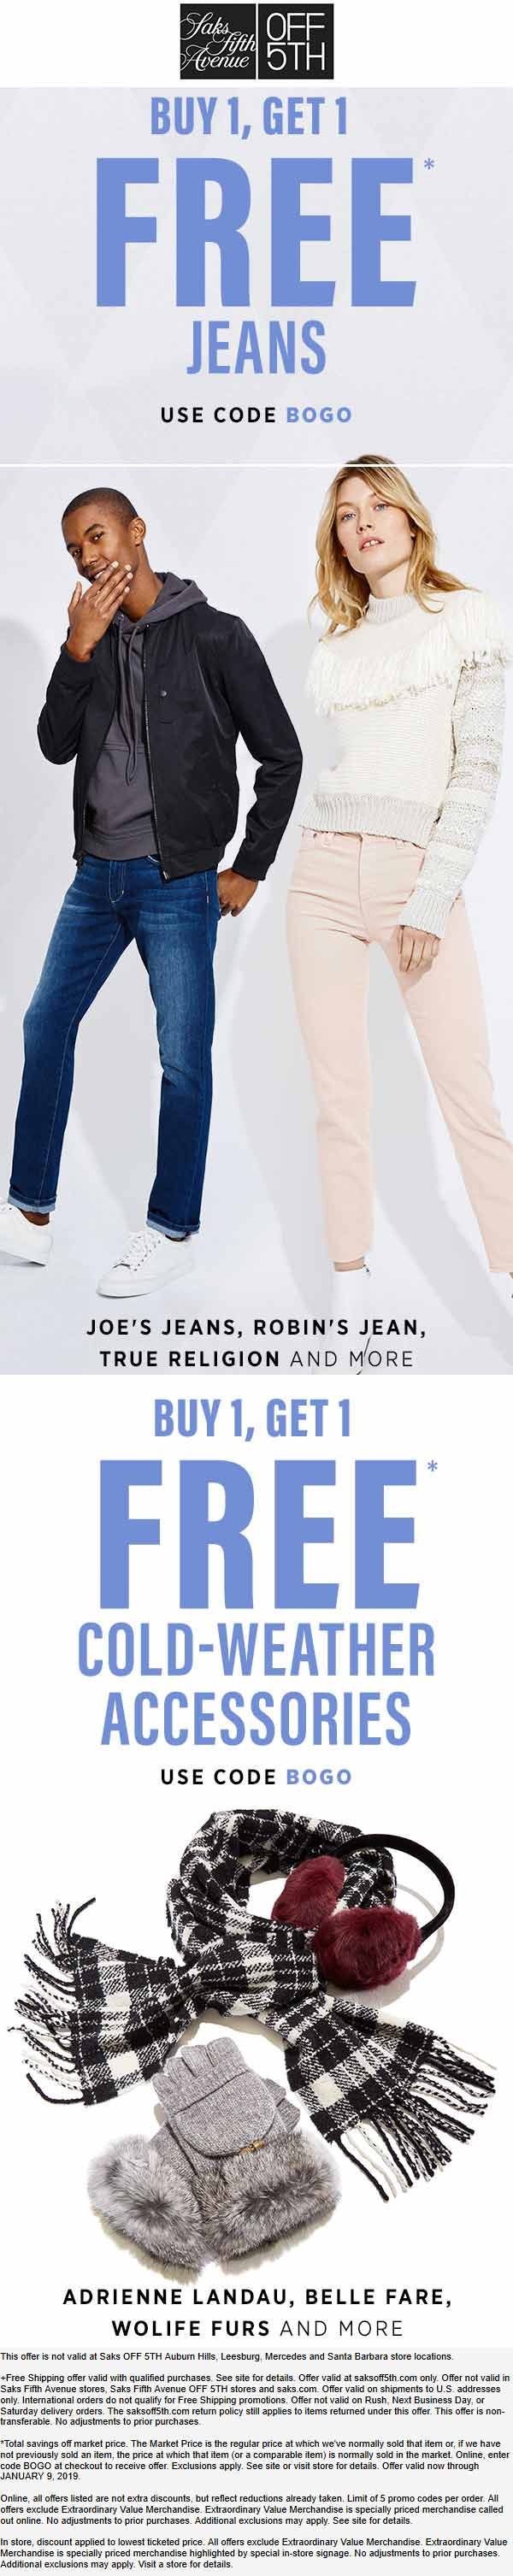 OFF 5TH Coupon January 2020 Second jeans free & more online at Saks Fifth Avenue OFF 5TH via promo code BOGO